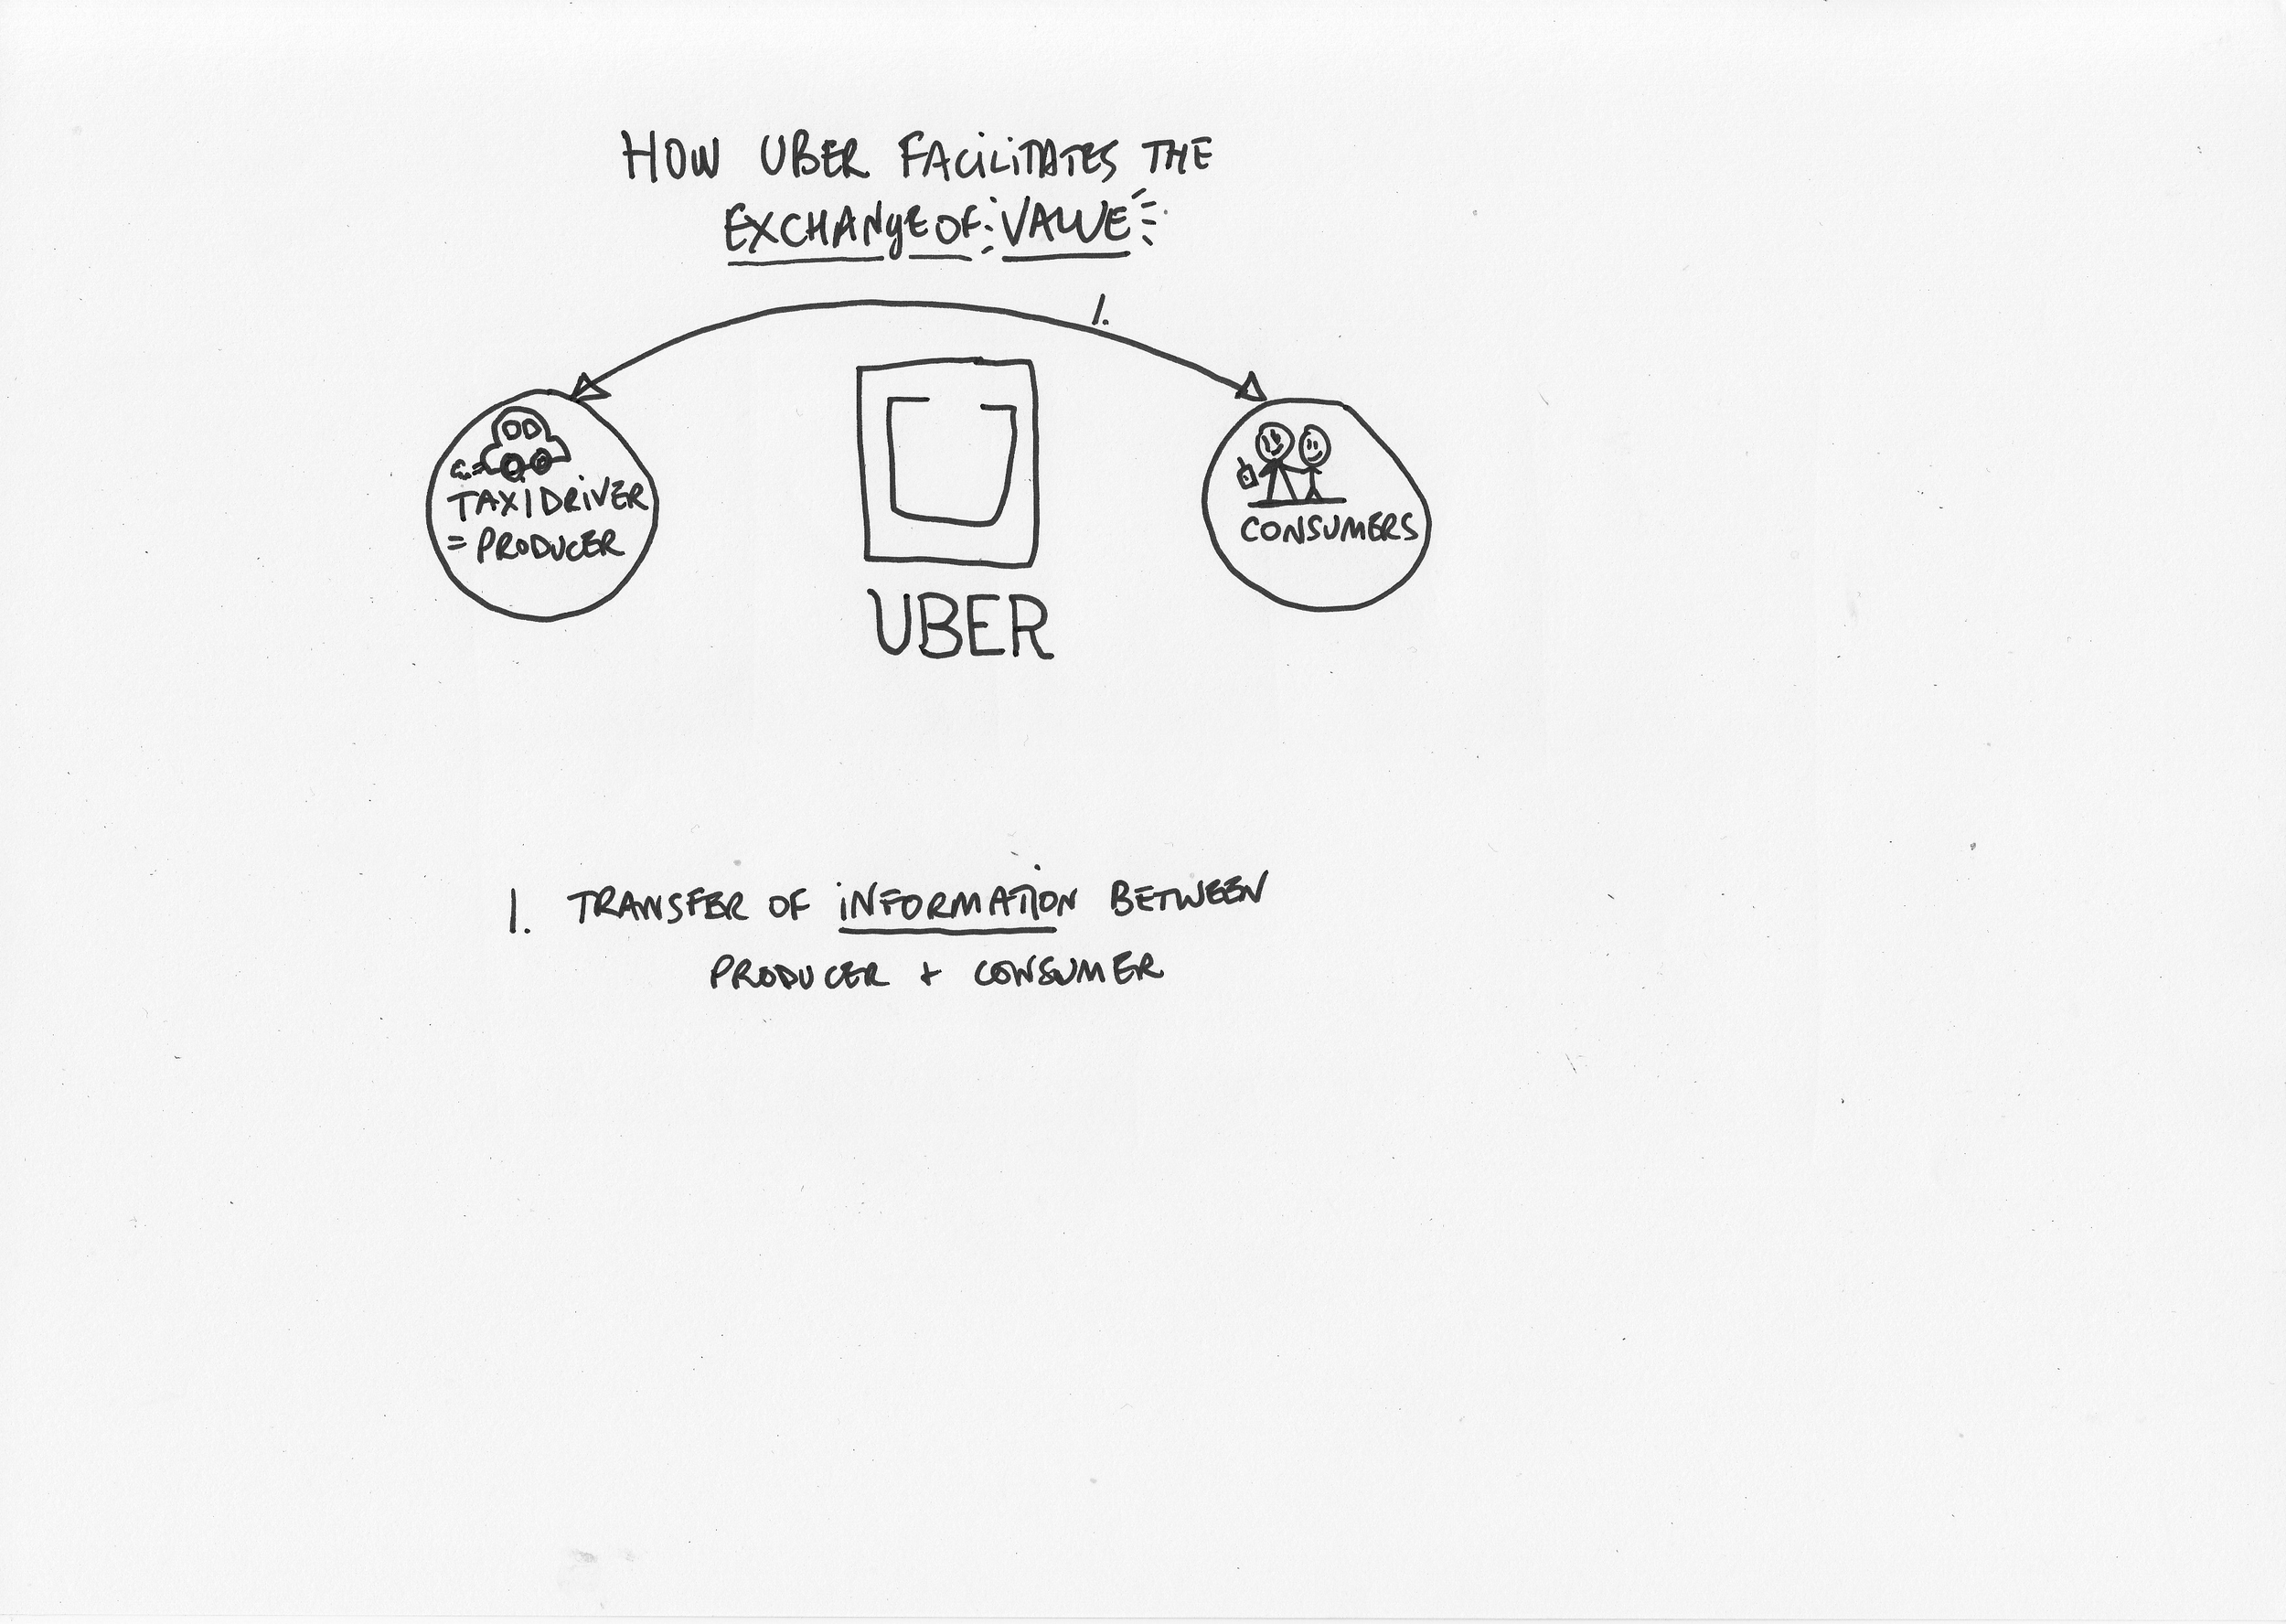 How Uber facilitates exchange of value1.jpg